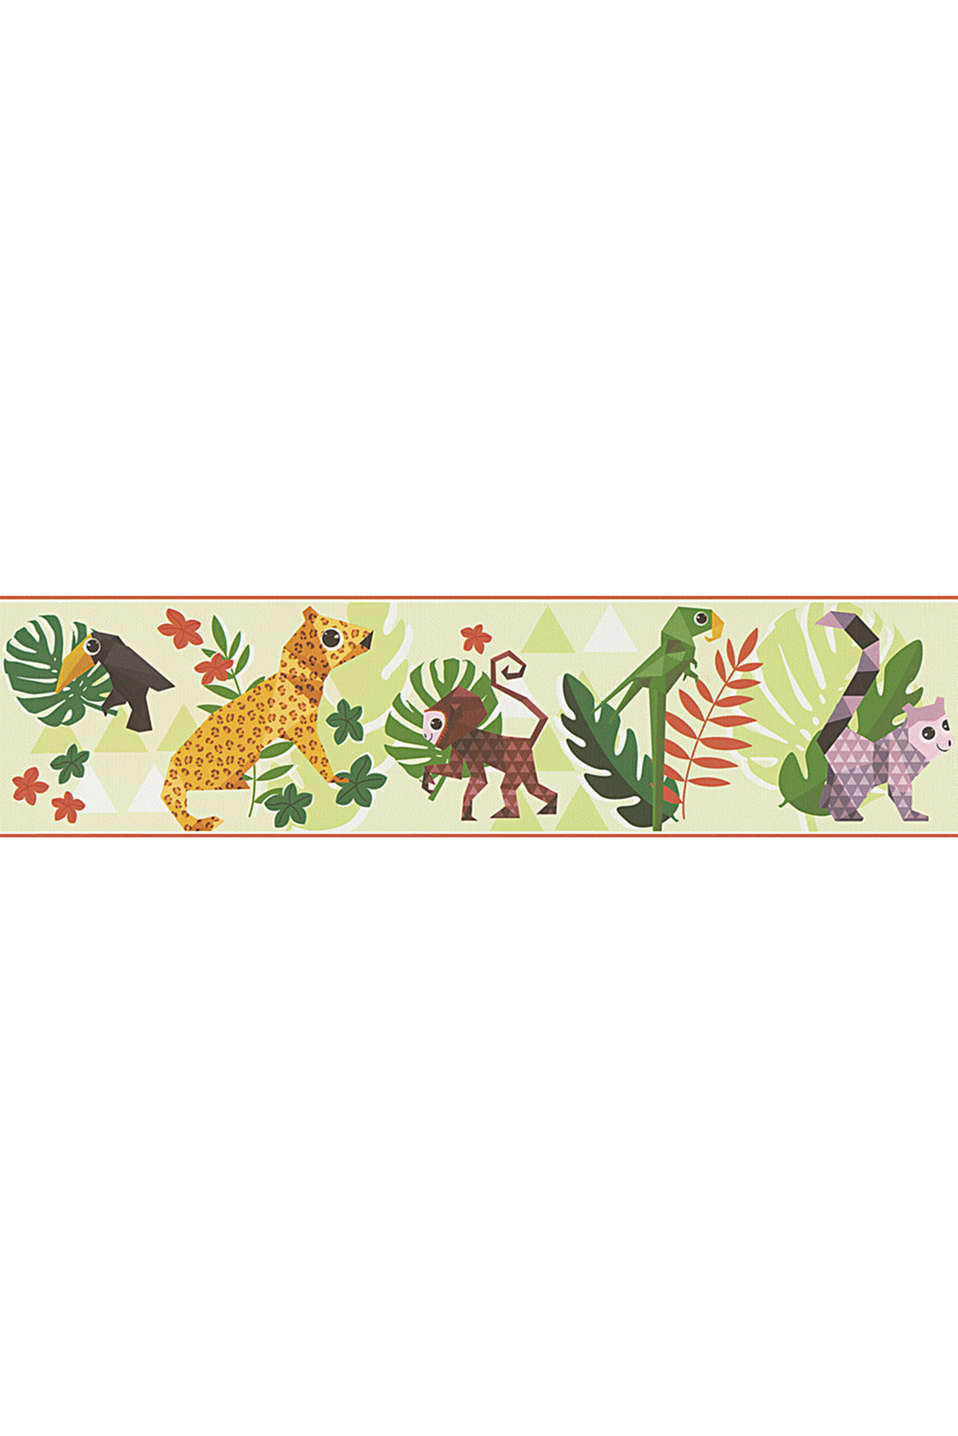 Esprit - Jungle wallpaper border for kids